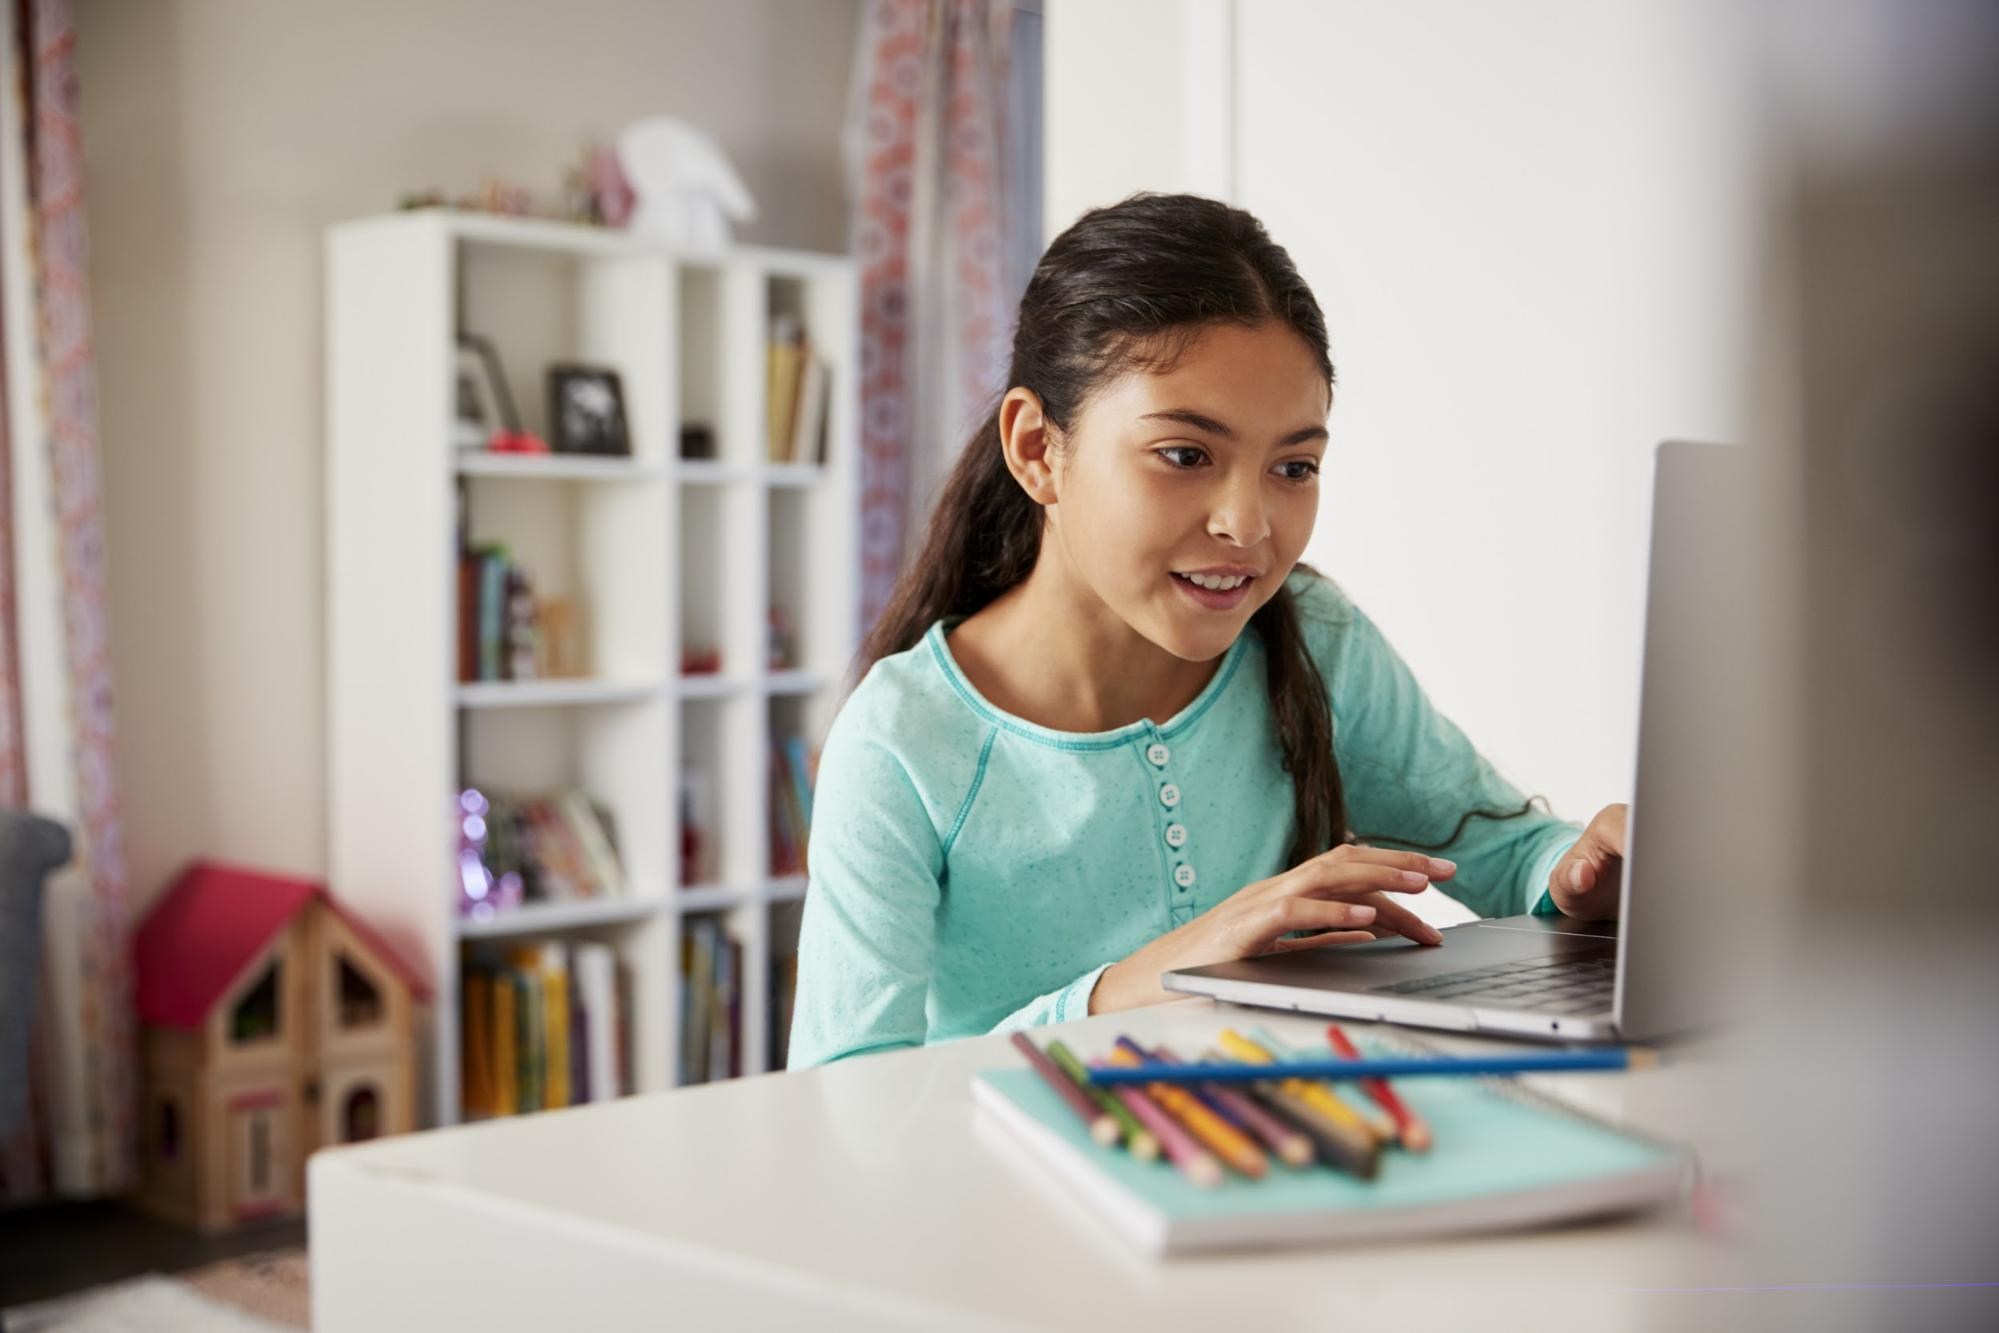 5 Reasons Girls Learning Code Makes the World Better